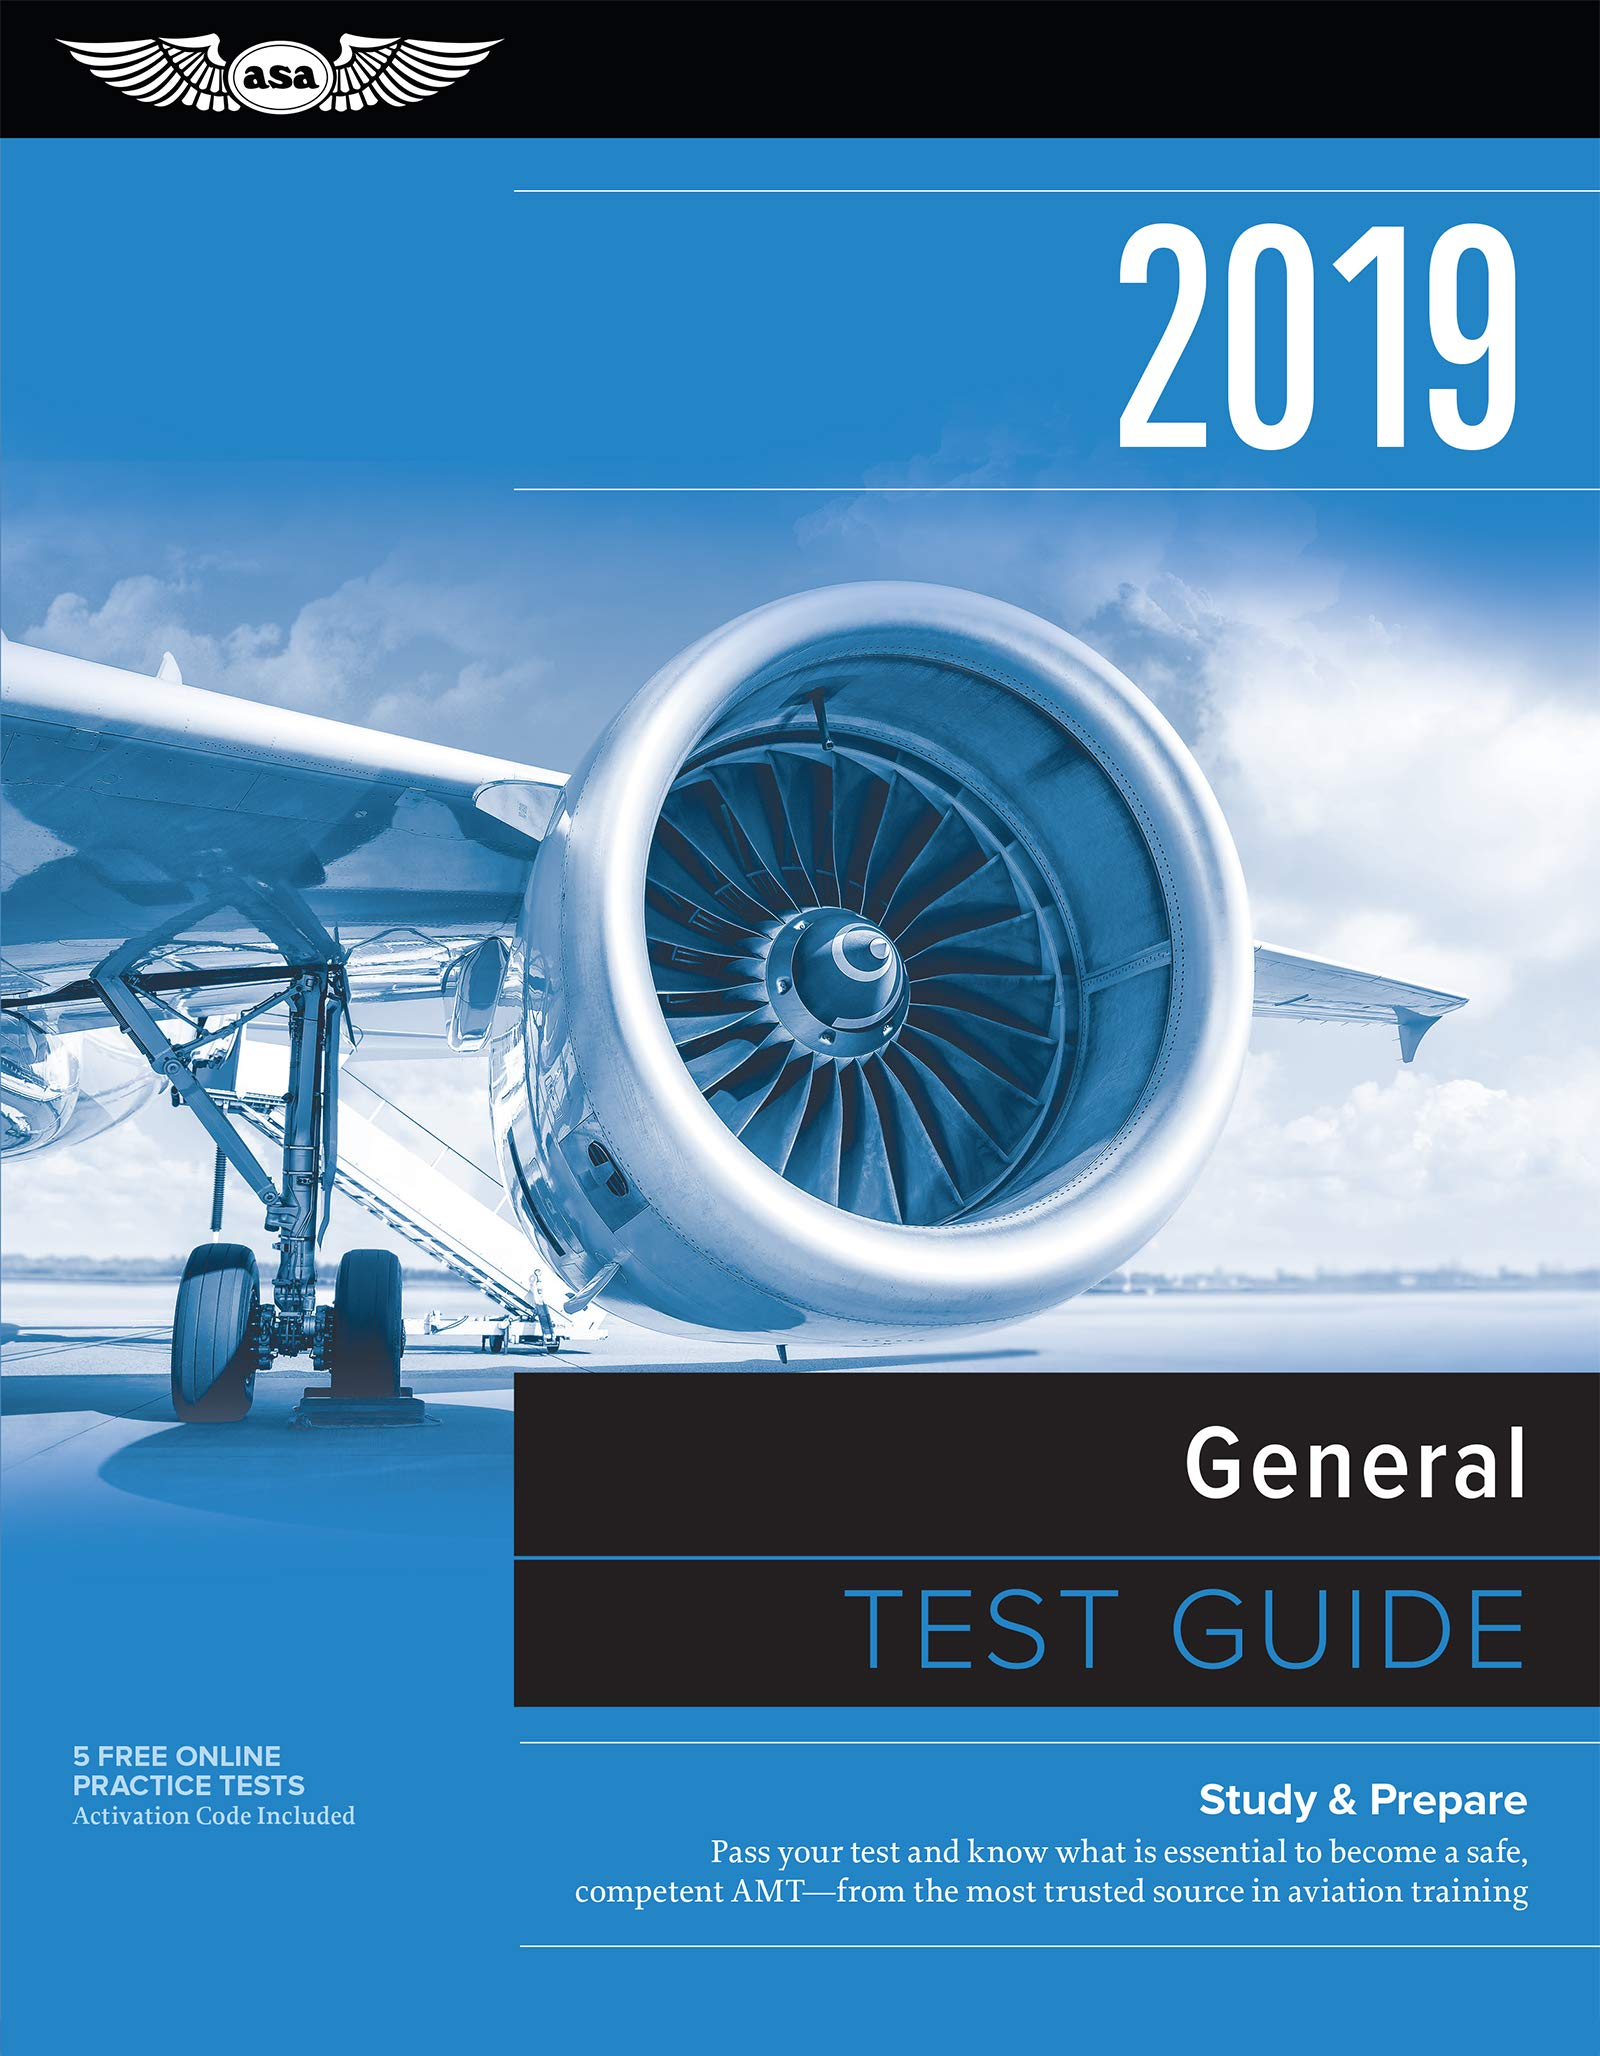 General Test Guide 2019: Pass your test and know what is essential to  become a safe, competent AMT from the most trusted source in aviation  training ...